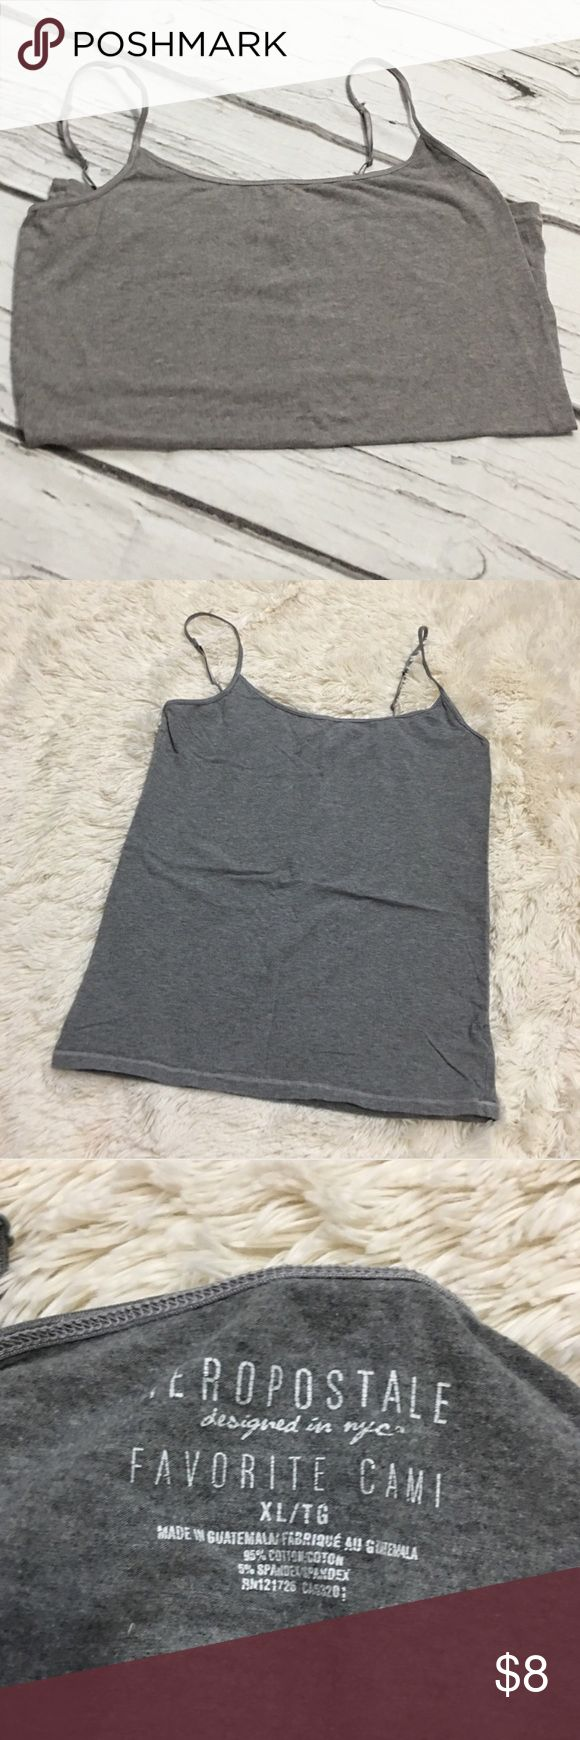 "Grey Cami Excellent used condition, worn once. No notable flaws. Aeropostale grey favorite Cami. It is 17"" from armpit to armpit laying flat and 24"" long.  Pet Friendly Home, Smoke Free Home , No trades. Offers, Bundles, and Questions Encouraged Aeropostale Tops Camisoles"